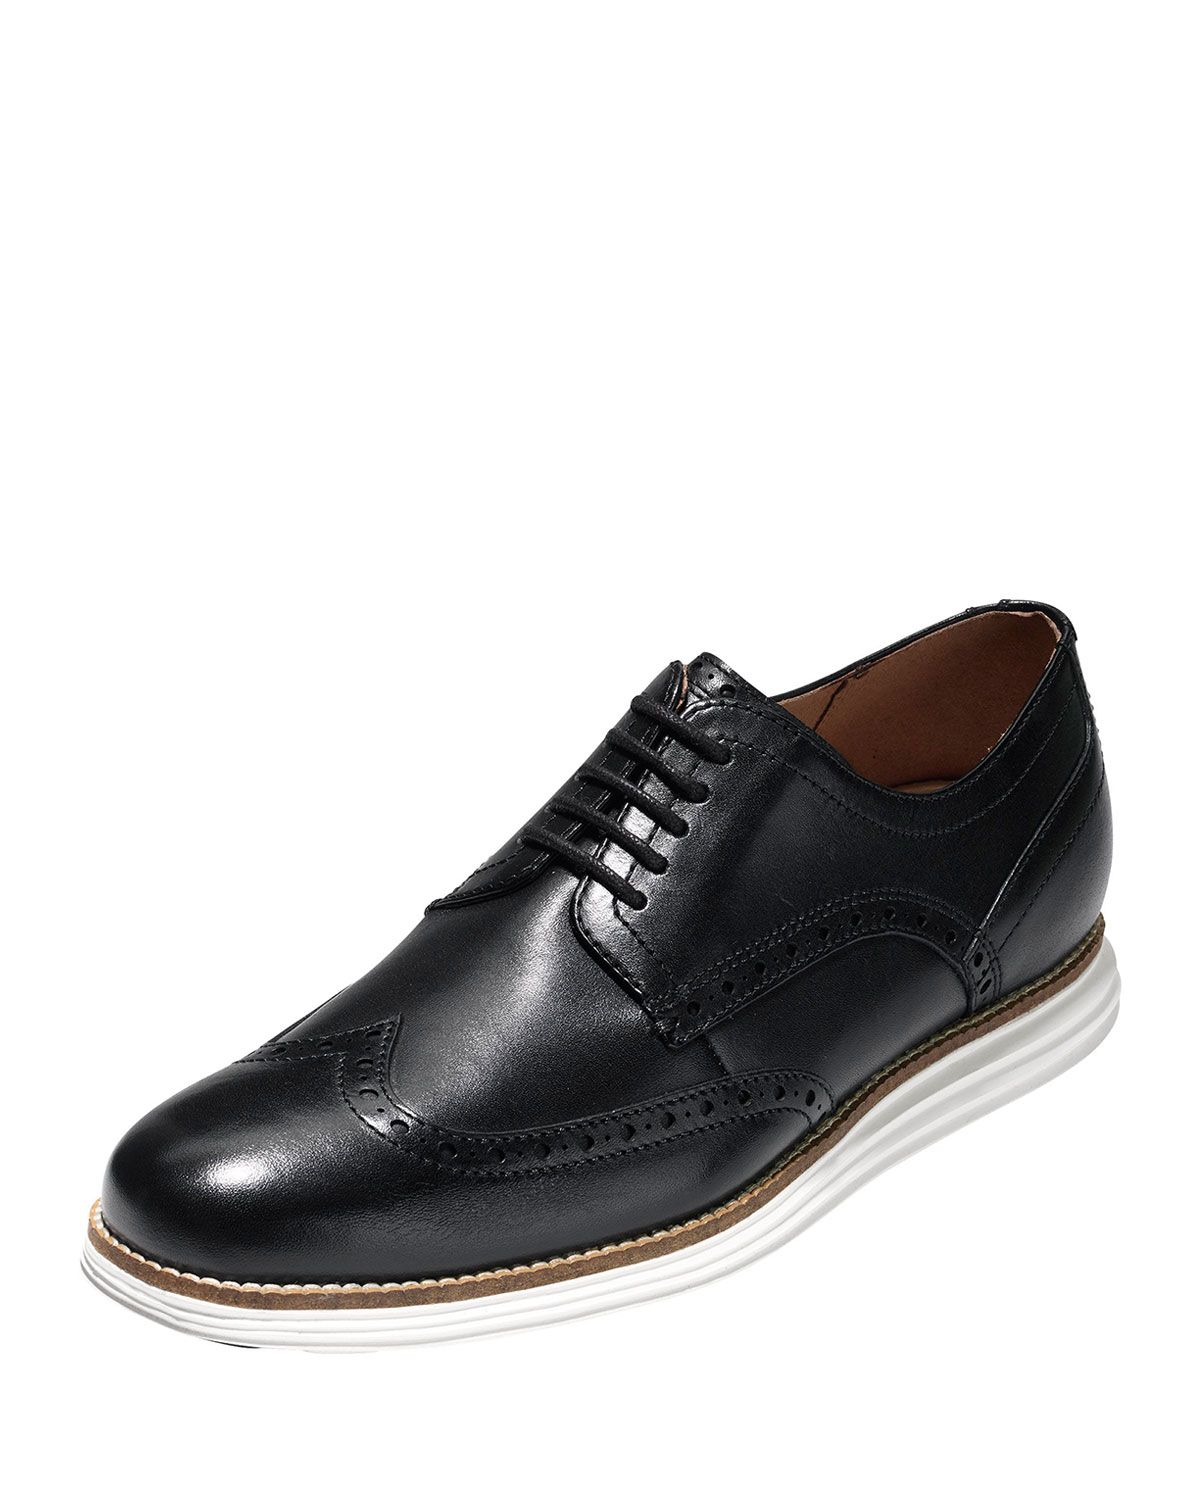 73589d6227b COLE HAAN MEN'S ORIGINAL GRAND LEATHER WING-TIP OXFORDS, BLACK. #colehaan  #shoes